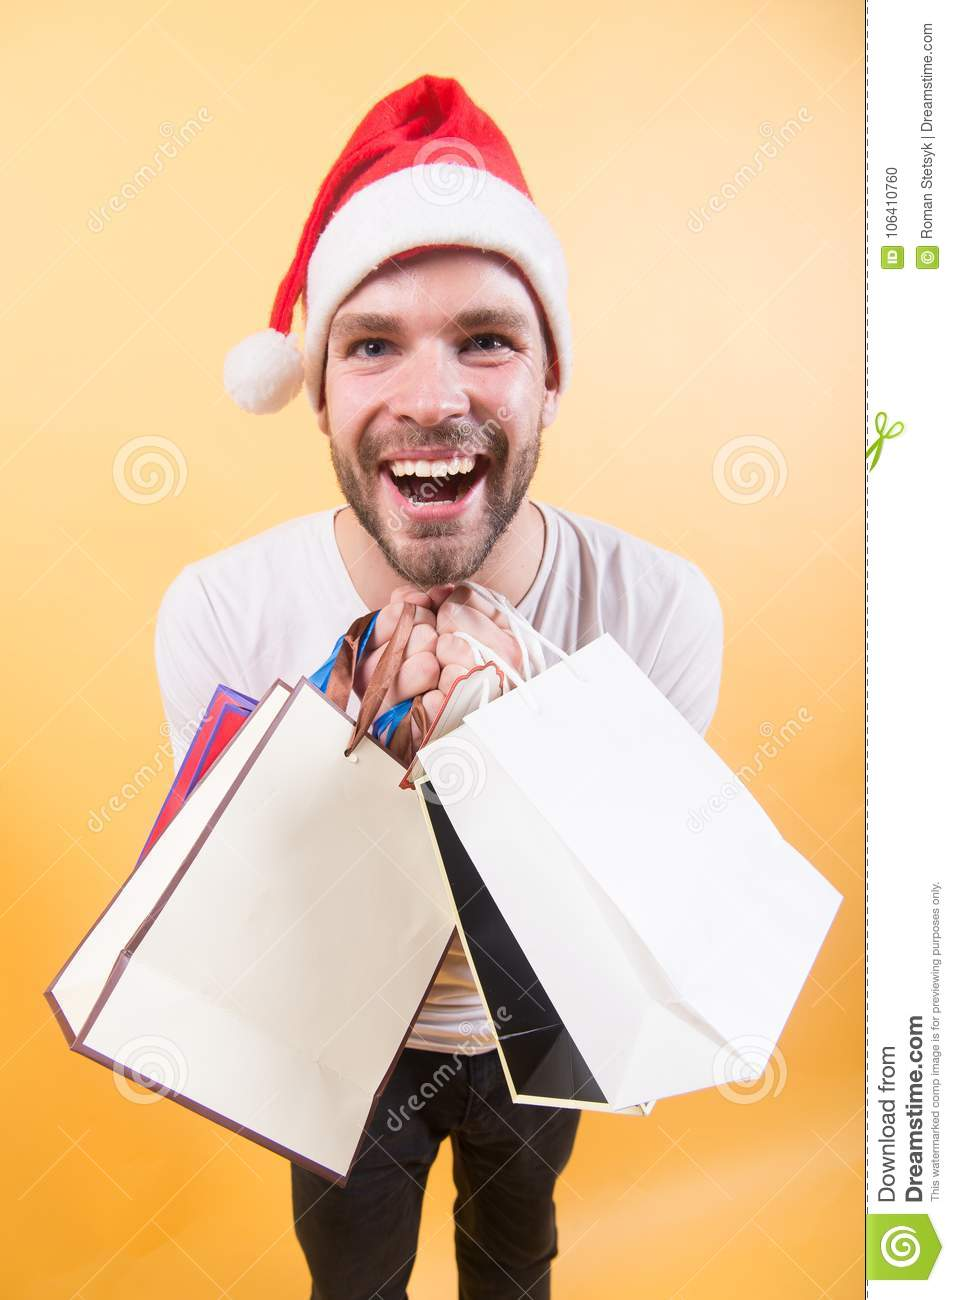 348657bbcc5c4 Macho Smile With Shopping Bags On Orange Background Stock Photo ...